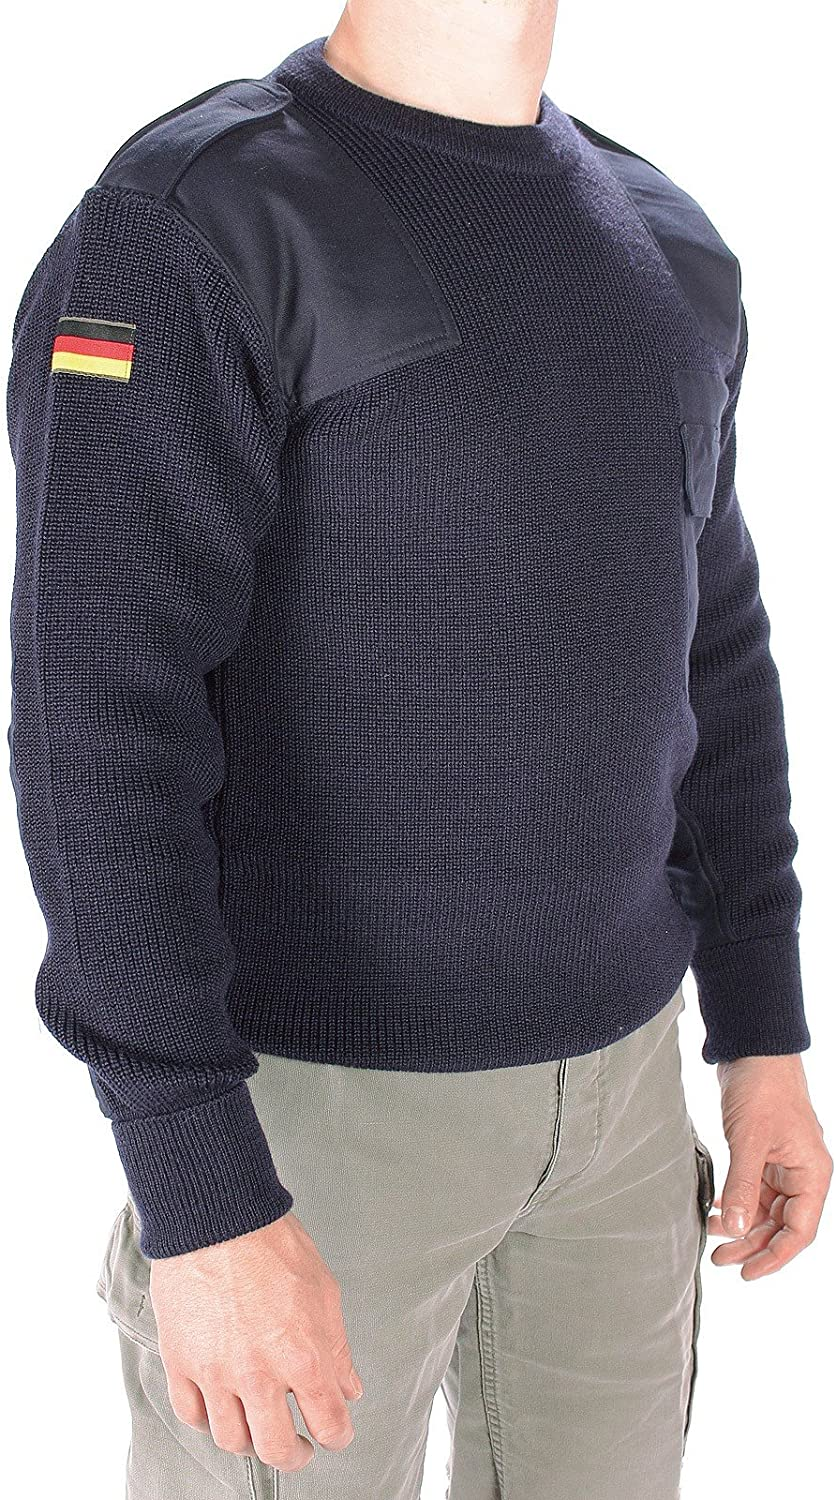 Black Miltec German Army Style Jumper